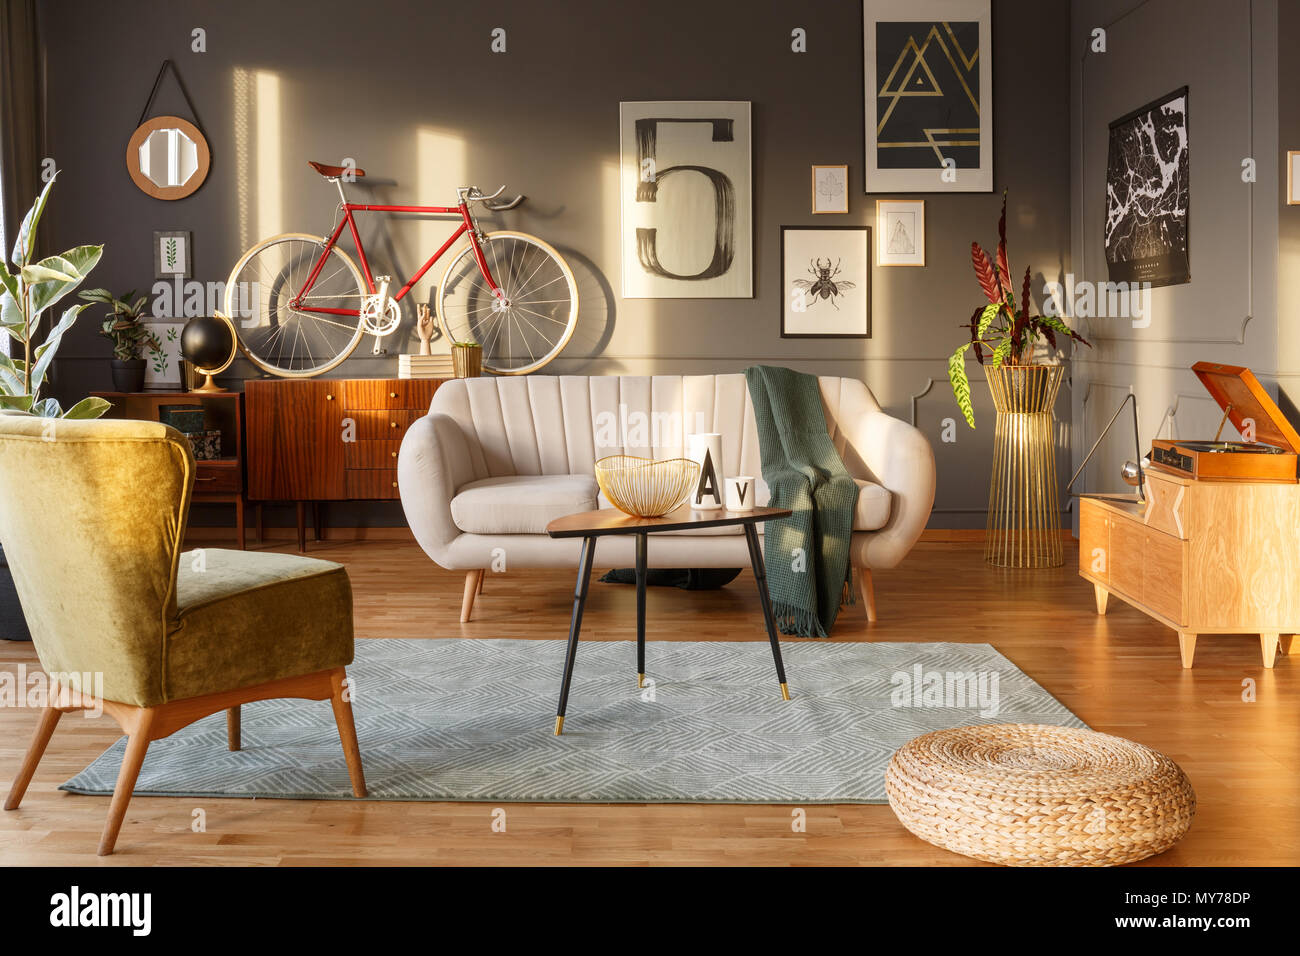 living room with light green carpet teal ideas color sofa vintage armchair sideboards gramophone and red bicycle against dark wall posters in a interior